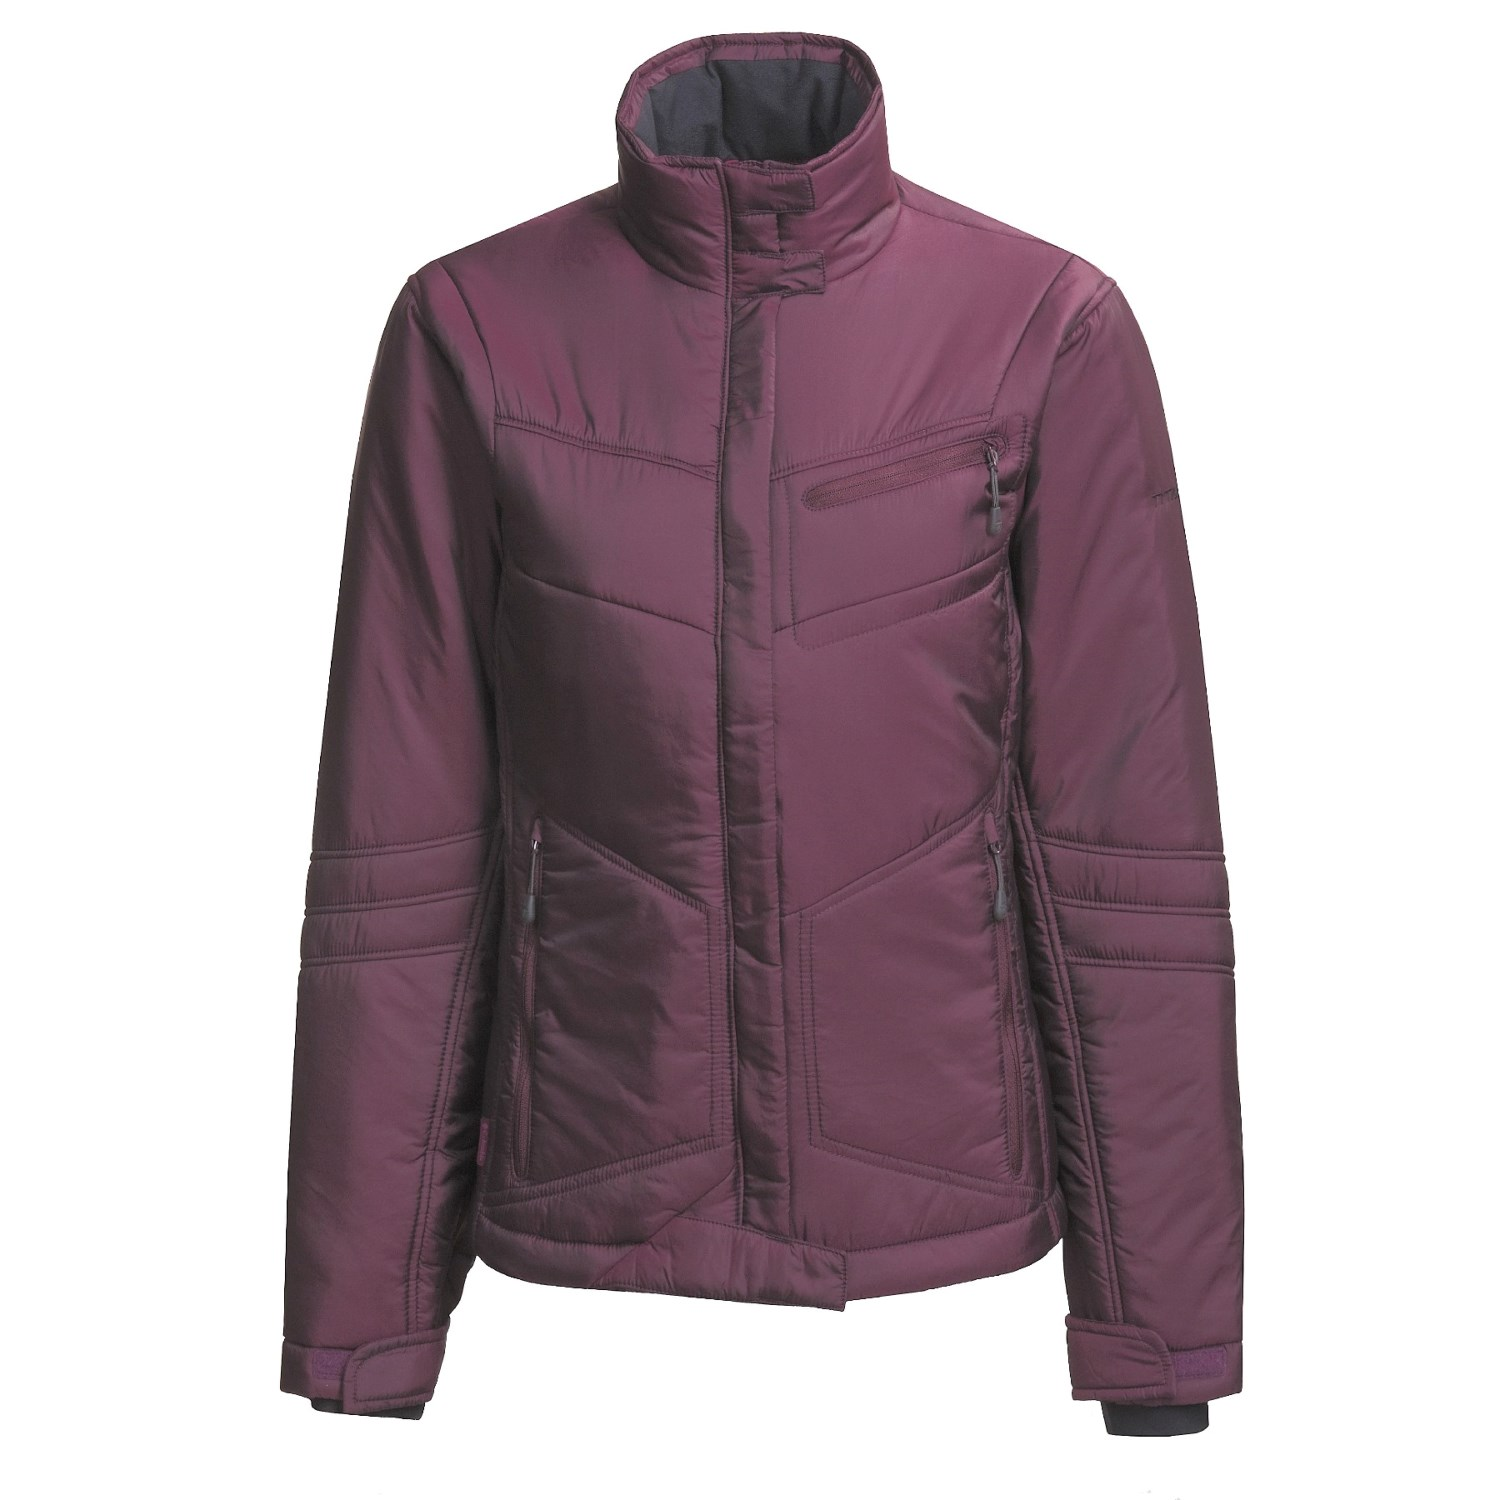 This jacket's sheer versatility and detailing make it perfect for everything from cycling to lifestyle to even running (reflective back trim brightens up your way home in the dark after your workout).